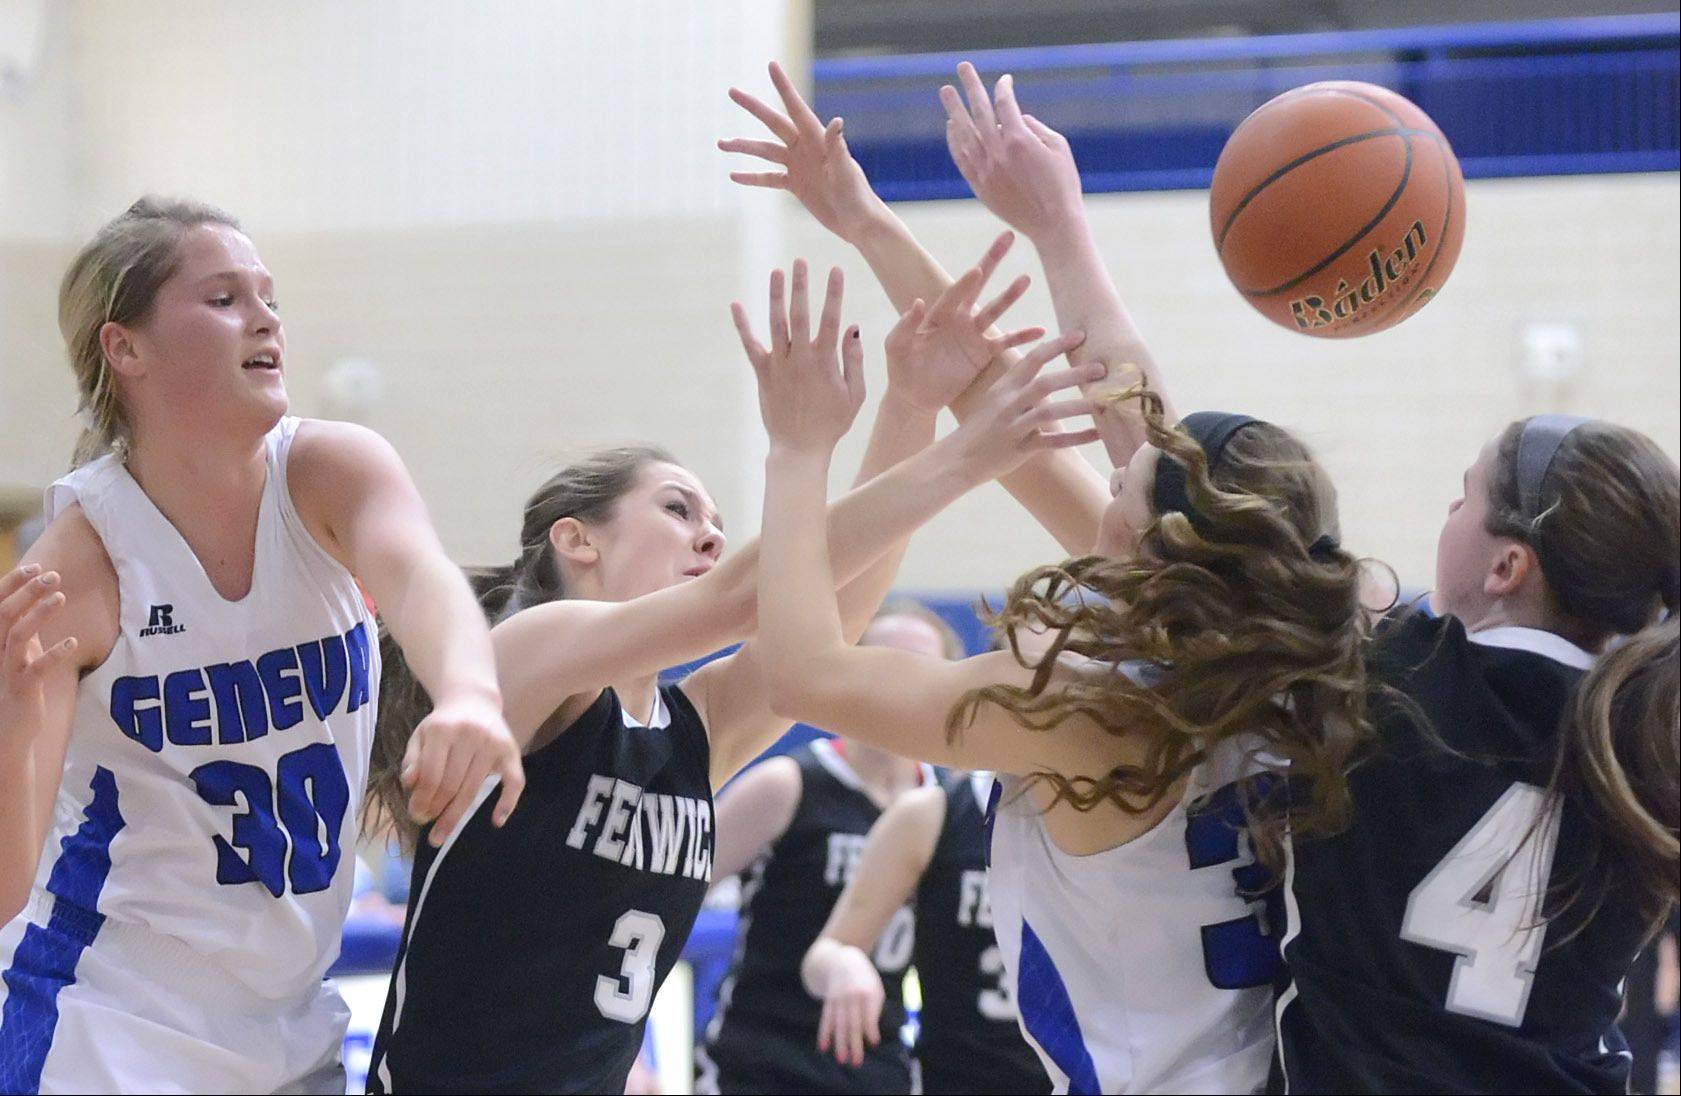 Geneva's Janie McCloughan (30) and Madeline Dunn (33) scramble for the loose ball with Fenwick's Katie Dvorak (3) and Megan Hussey (4) in the second quarter on Wednesday, January 29.